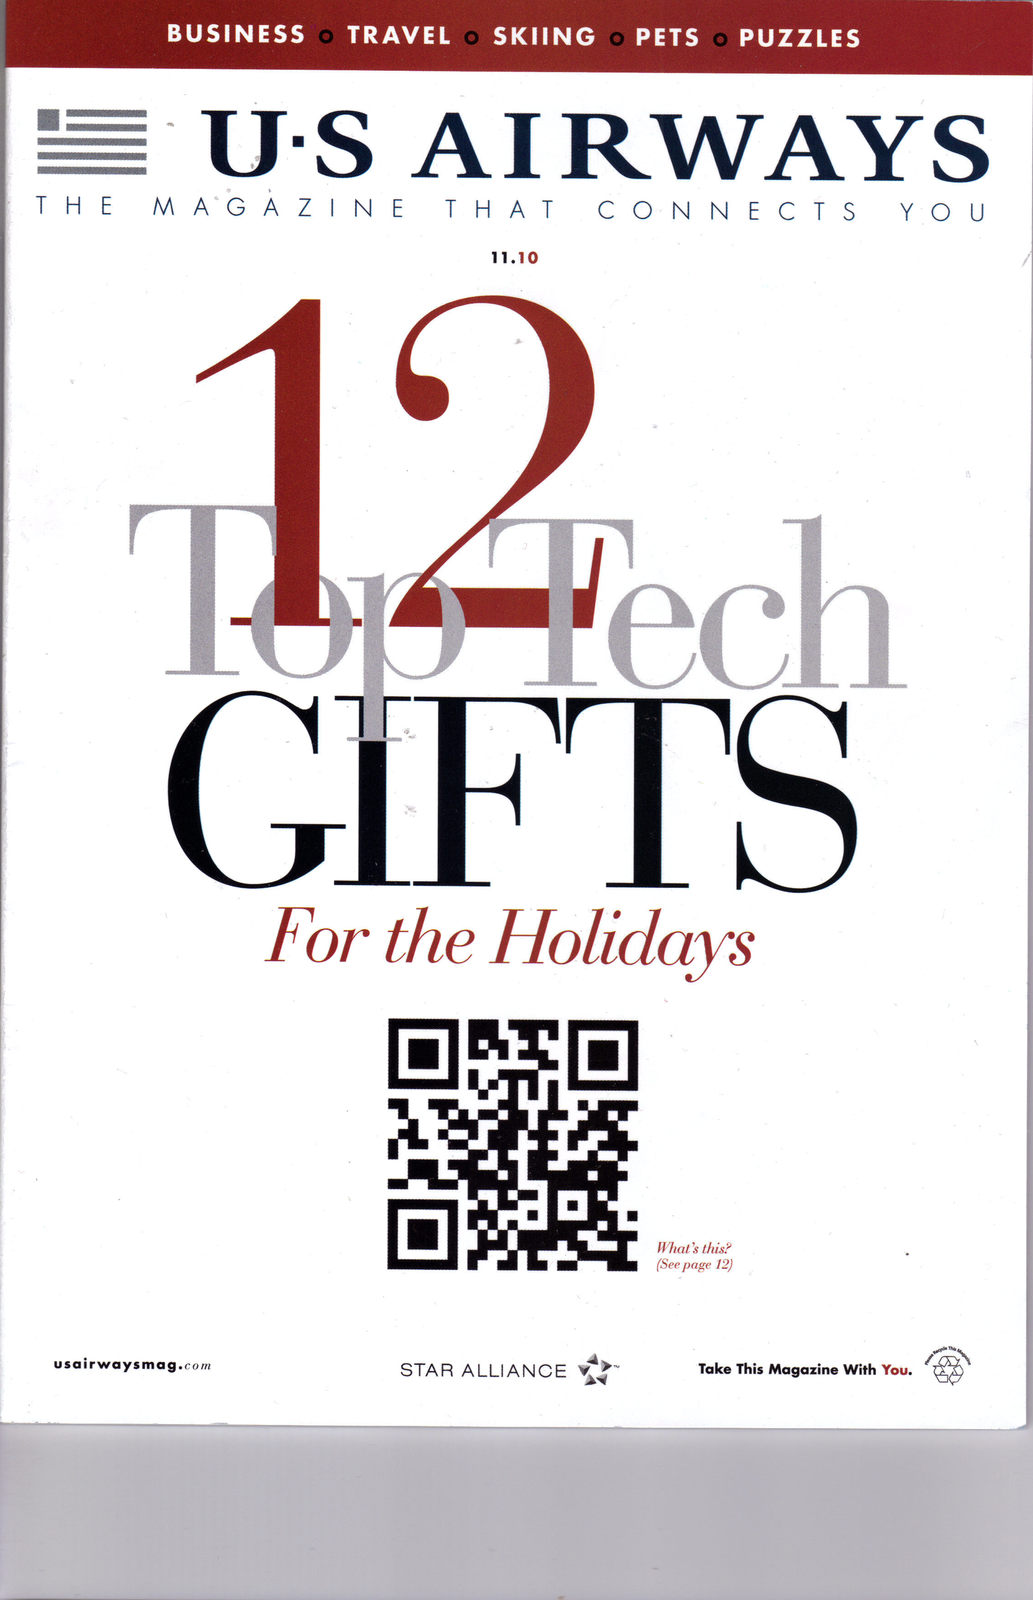 Primary image for US AIRWAYS 12 TOP TECH GIFTS FOR THE HOLIDAYS 11.10